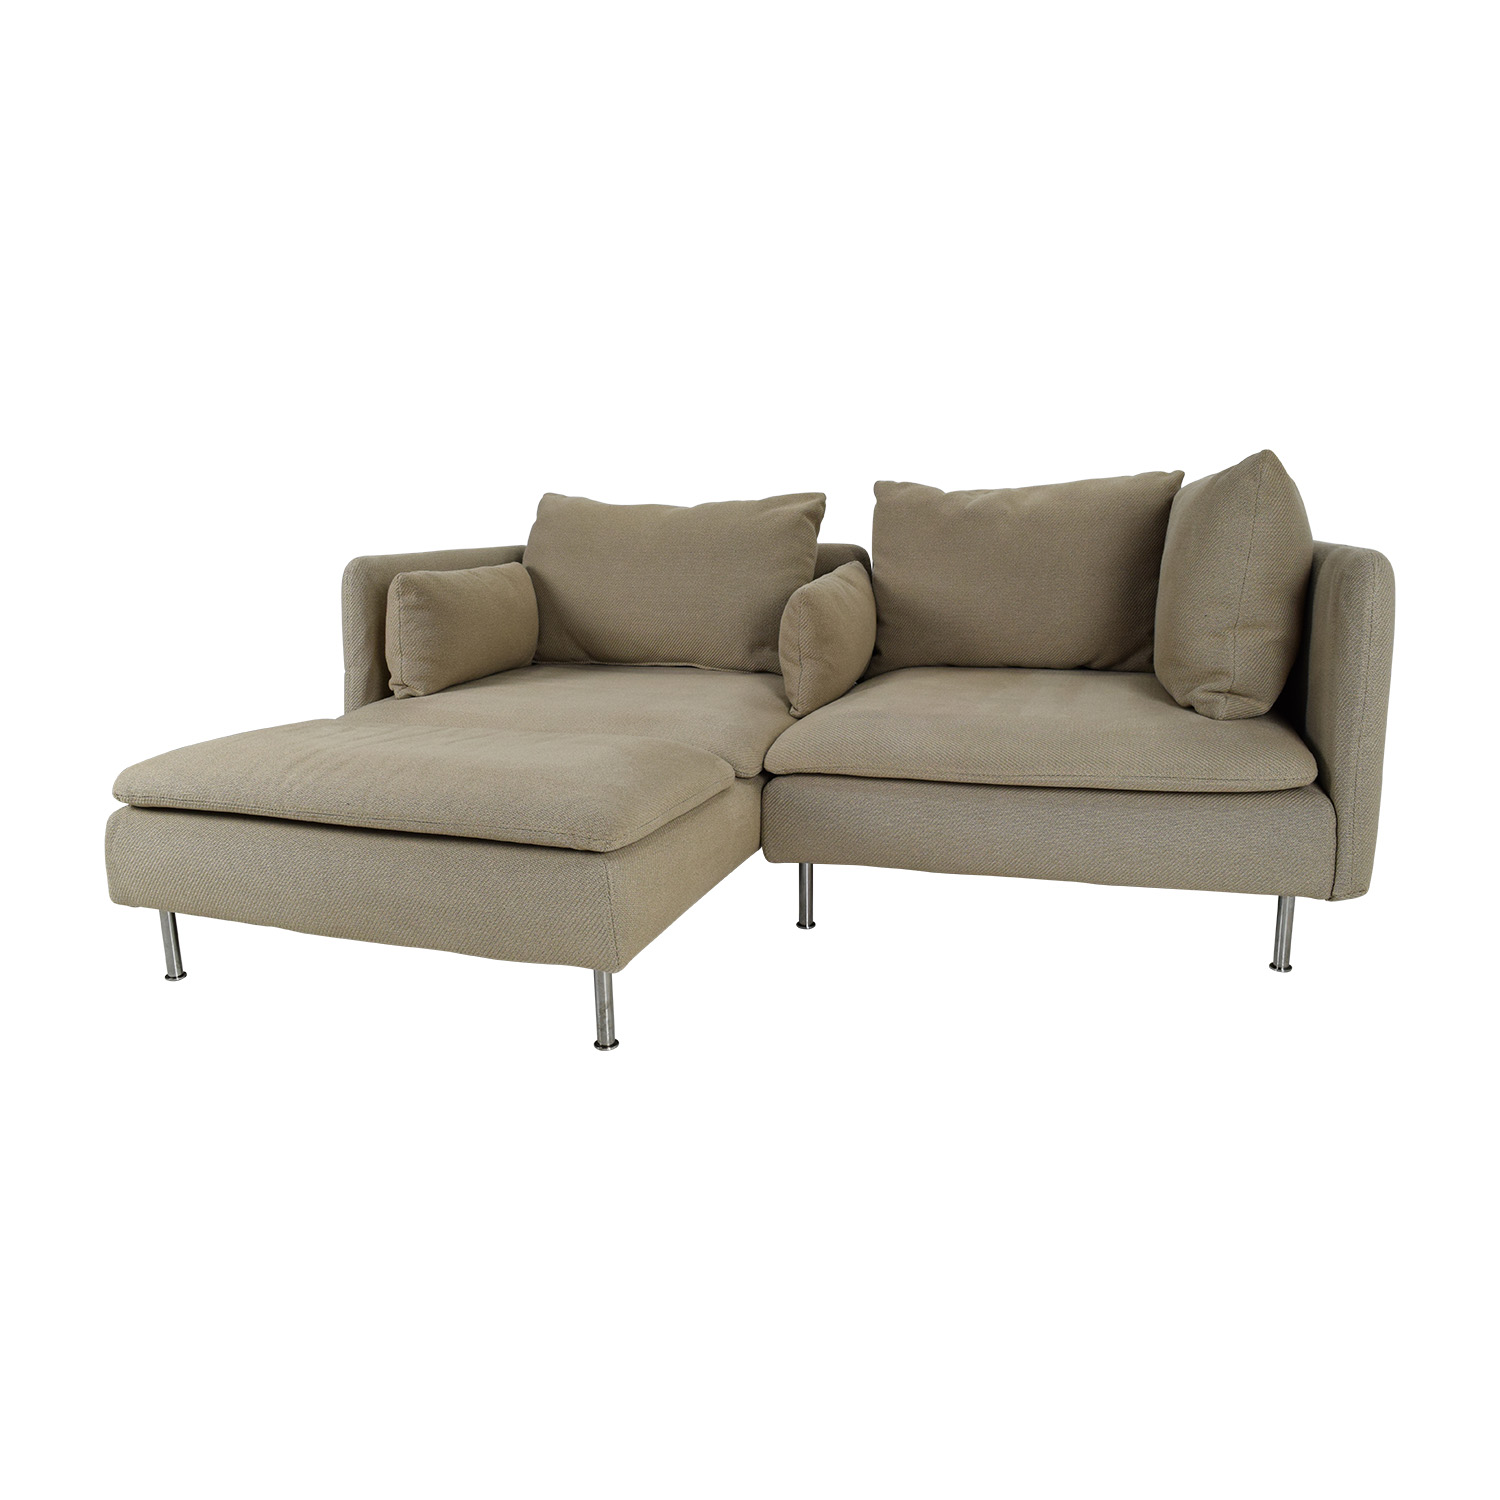 50 Off Ikea Soderhamn Sectional Sofa Sofas